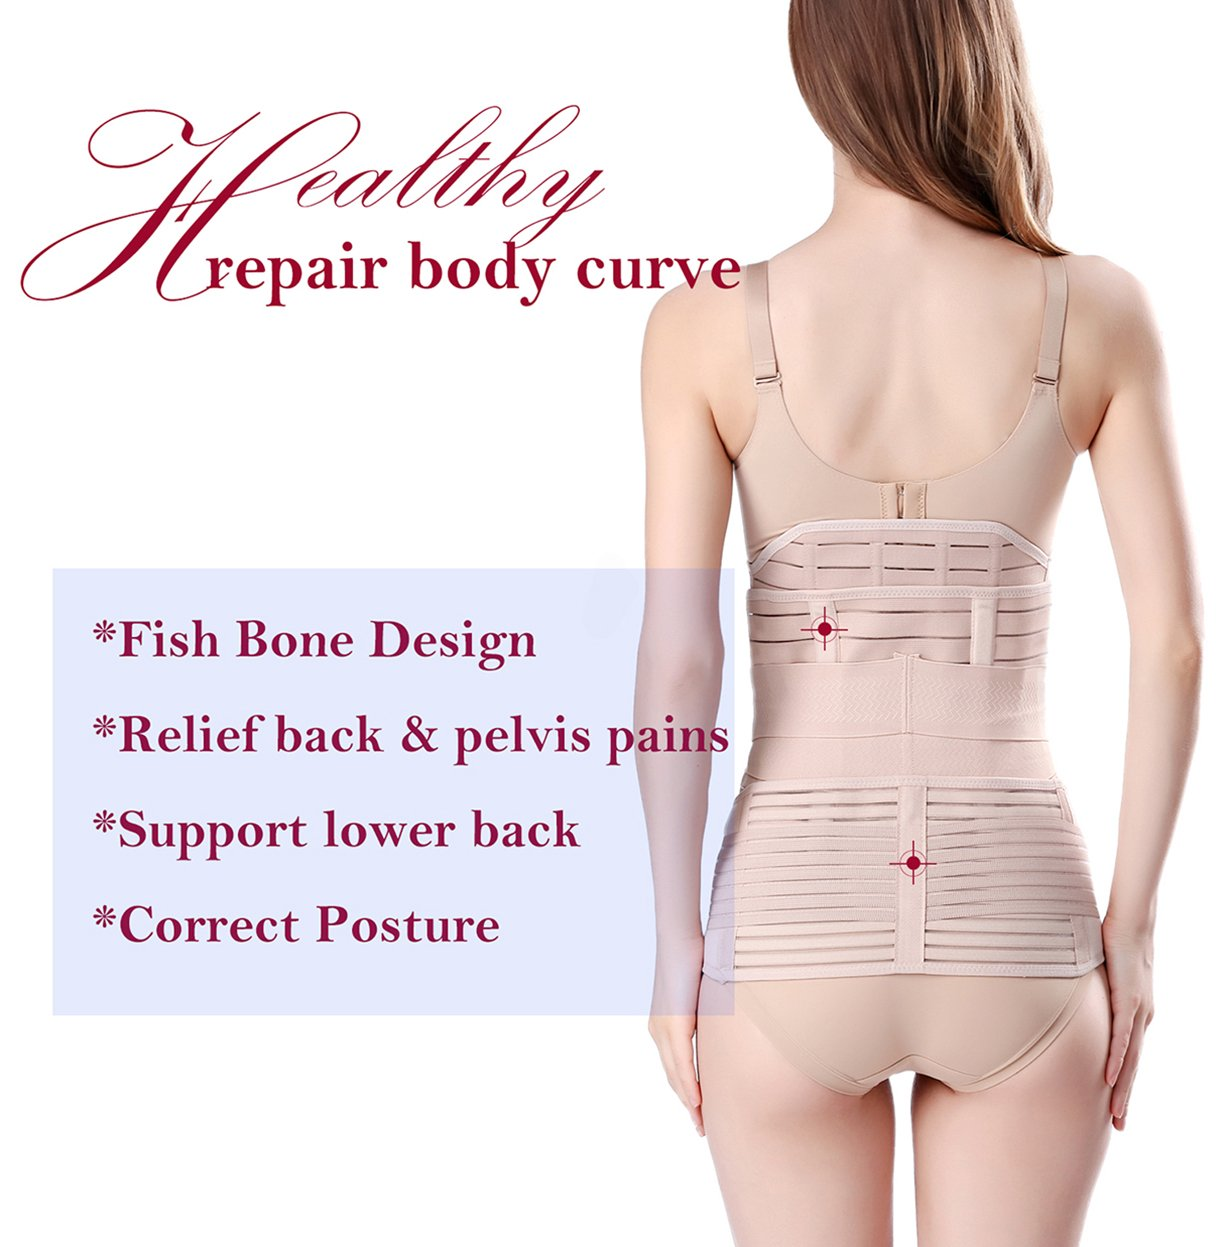 3 in 1 Postpartum Support - Recovery Belly/waist/pelvis Belt Shapewear Slimming Girdle, Beige, One Size by Chongerfei (Image #4)